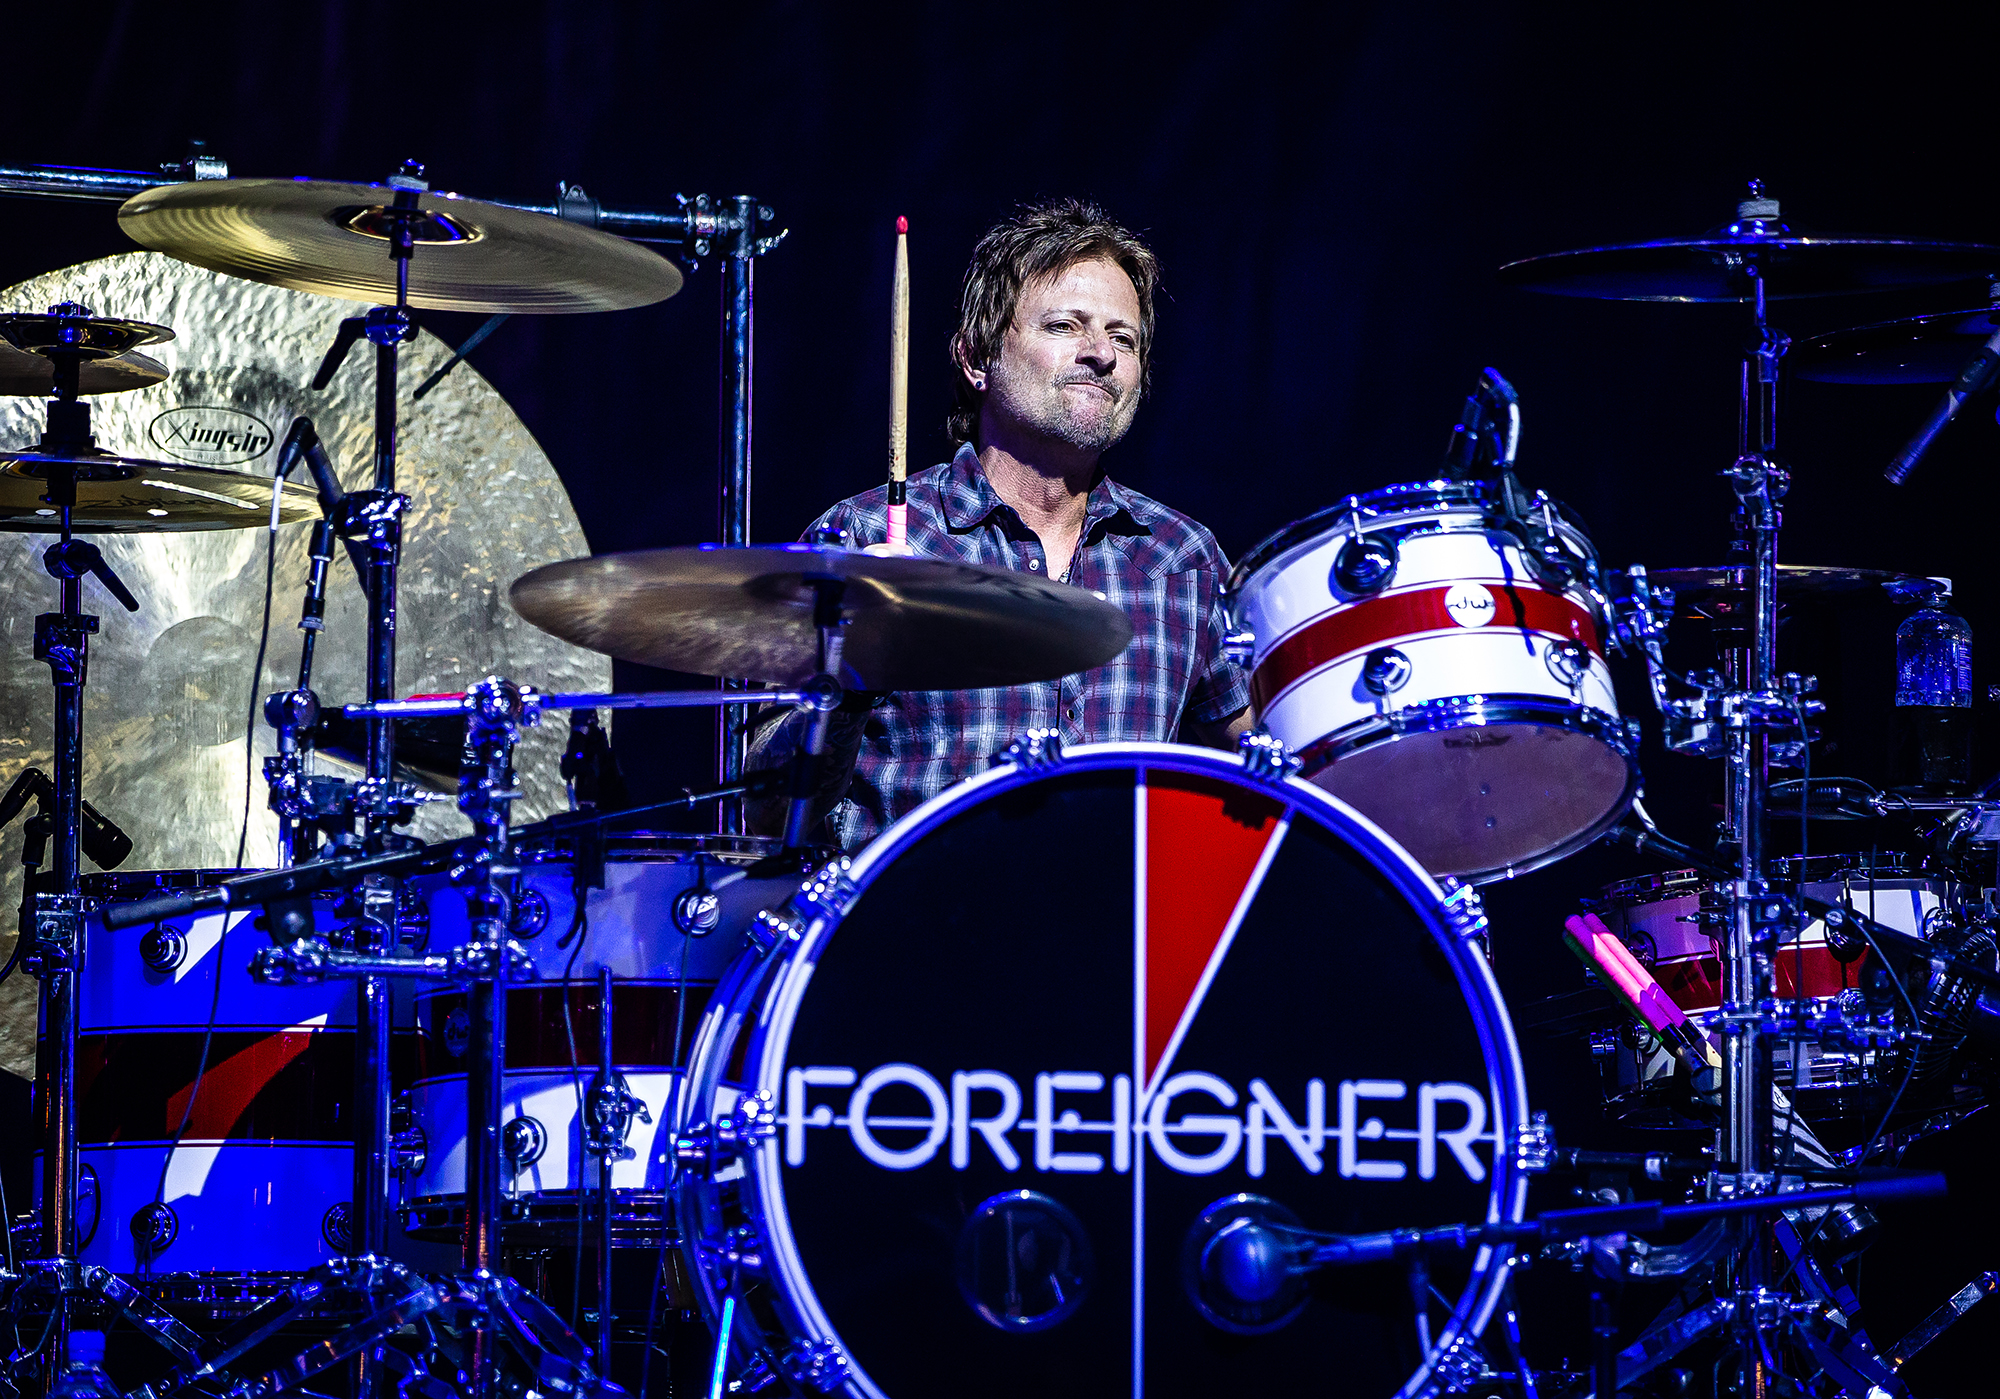 Chris Frazier on the drums with Foreigner as the band performs on the Grandstand Stage during the Illinois State Fair at the Illinois State Fairgrounds, Sunday, Aug. 12, 2018, in Springfield, Ill. [Justin L. Fowler/The State Journal-Register]